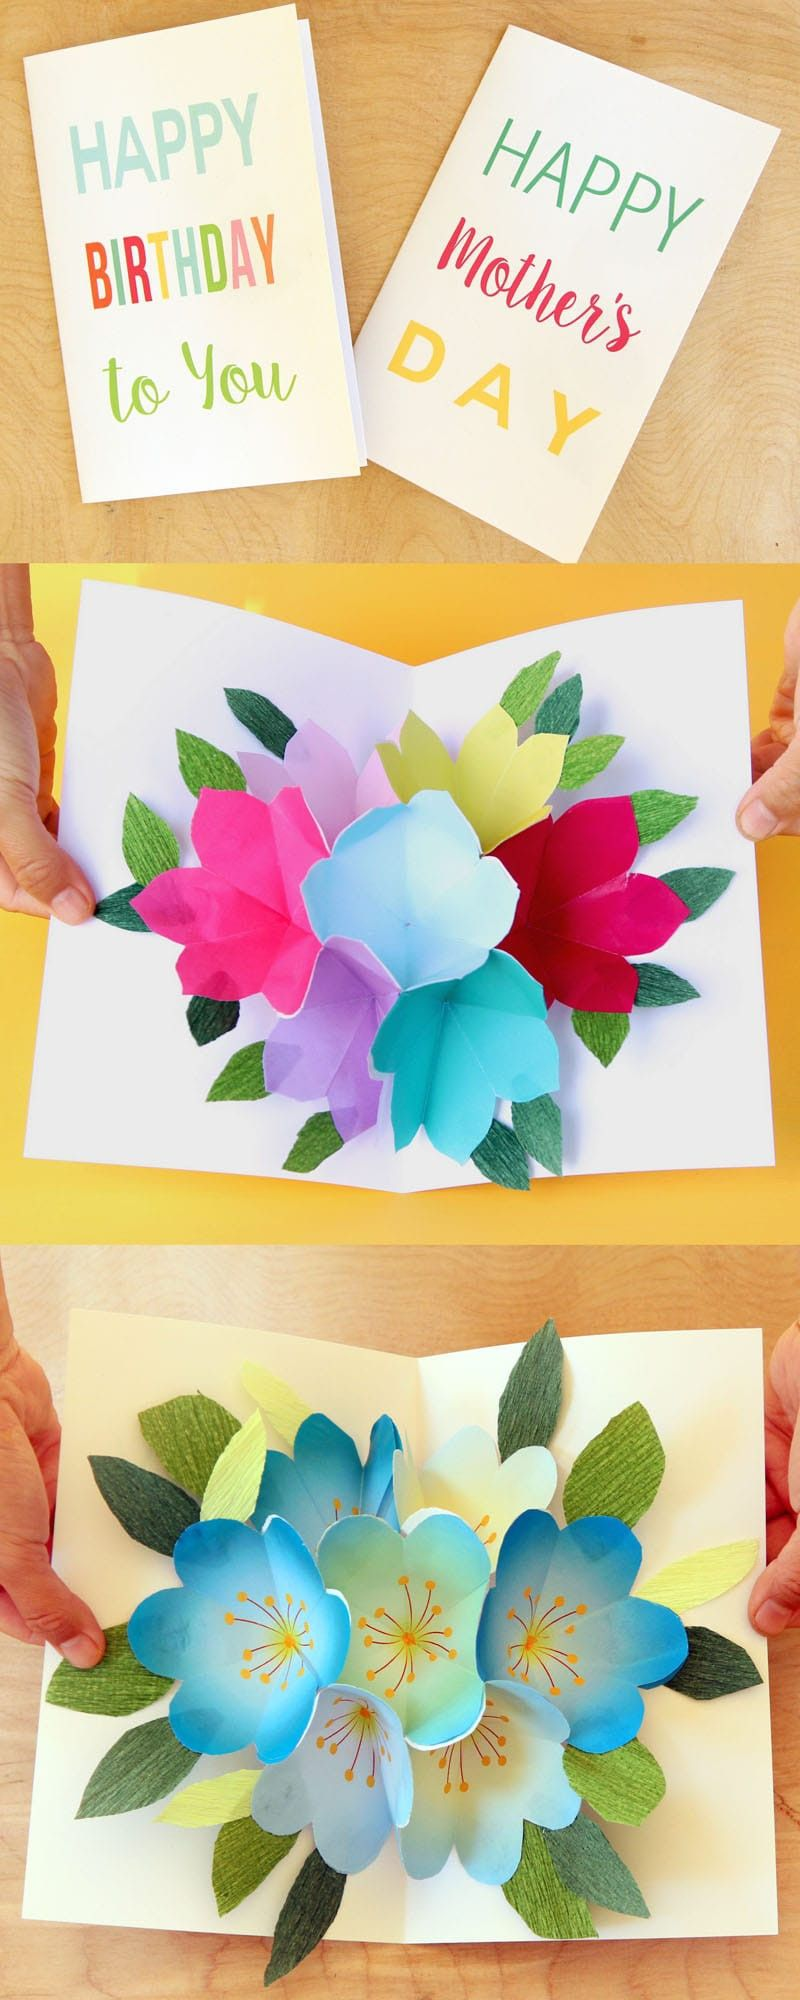 Pop Up Flowers Diy Printable Mother 8217 S Day Card Happy Birthday Cards Printable Pop Up Card Templates Birthday Card Pop Up